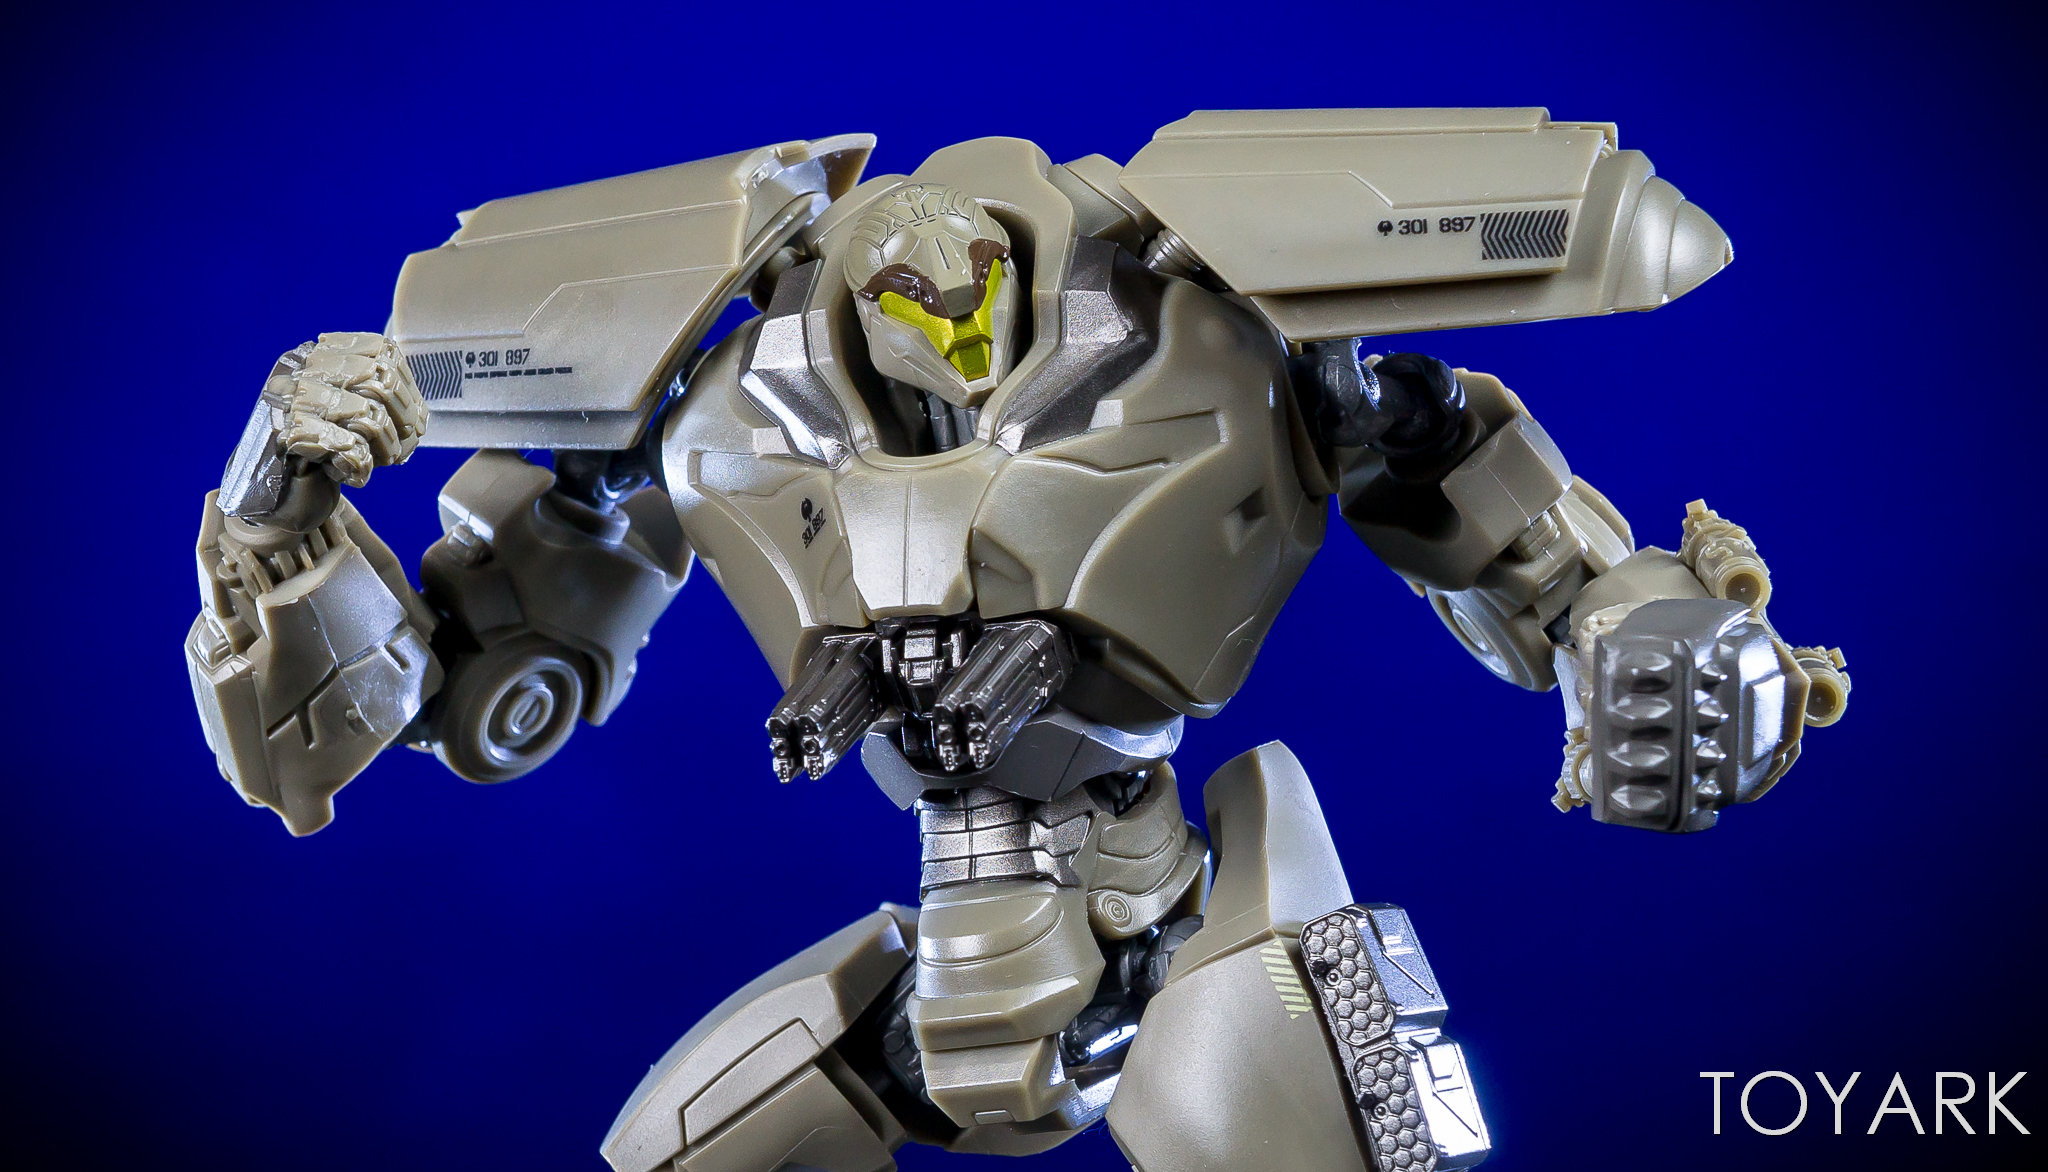 http://news.toyark.com/wp-content/uploads/sites/4/2018/02/Tamashii-Nations-Pacific-Rim-Uprising-070.jpg